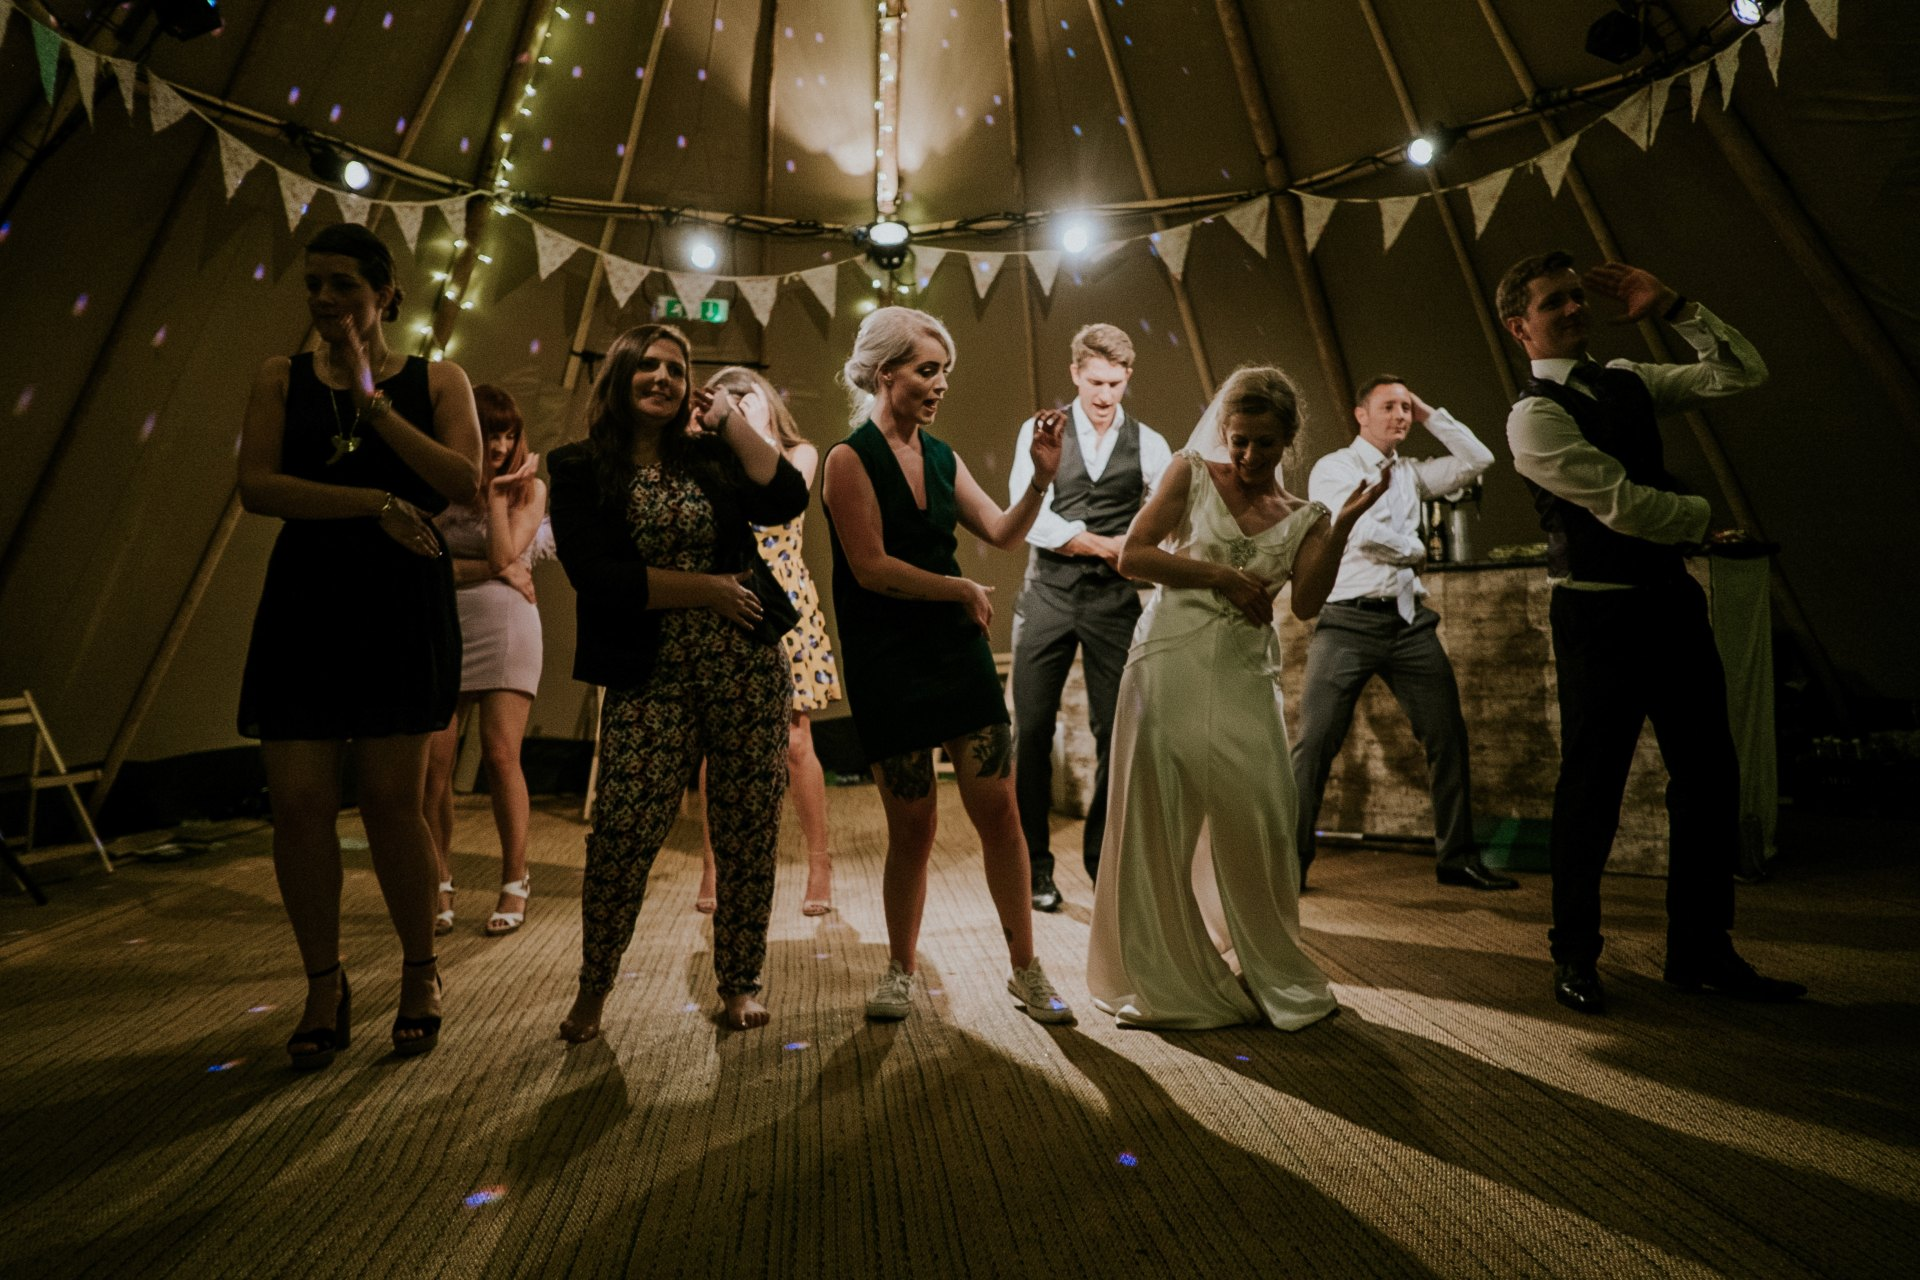 7 Things That Suck About Having A Small, Intimate Wedding